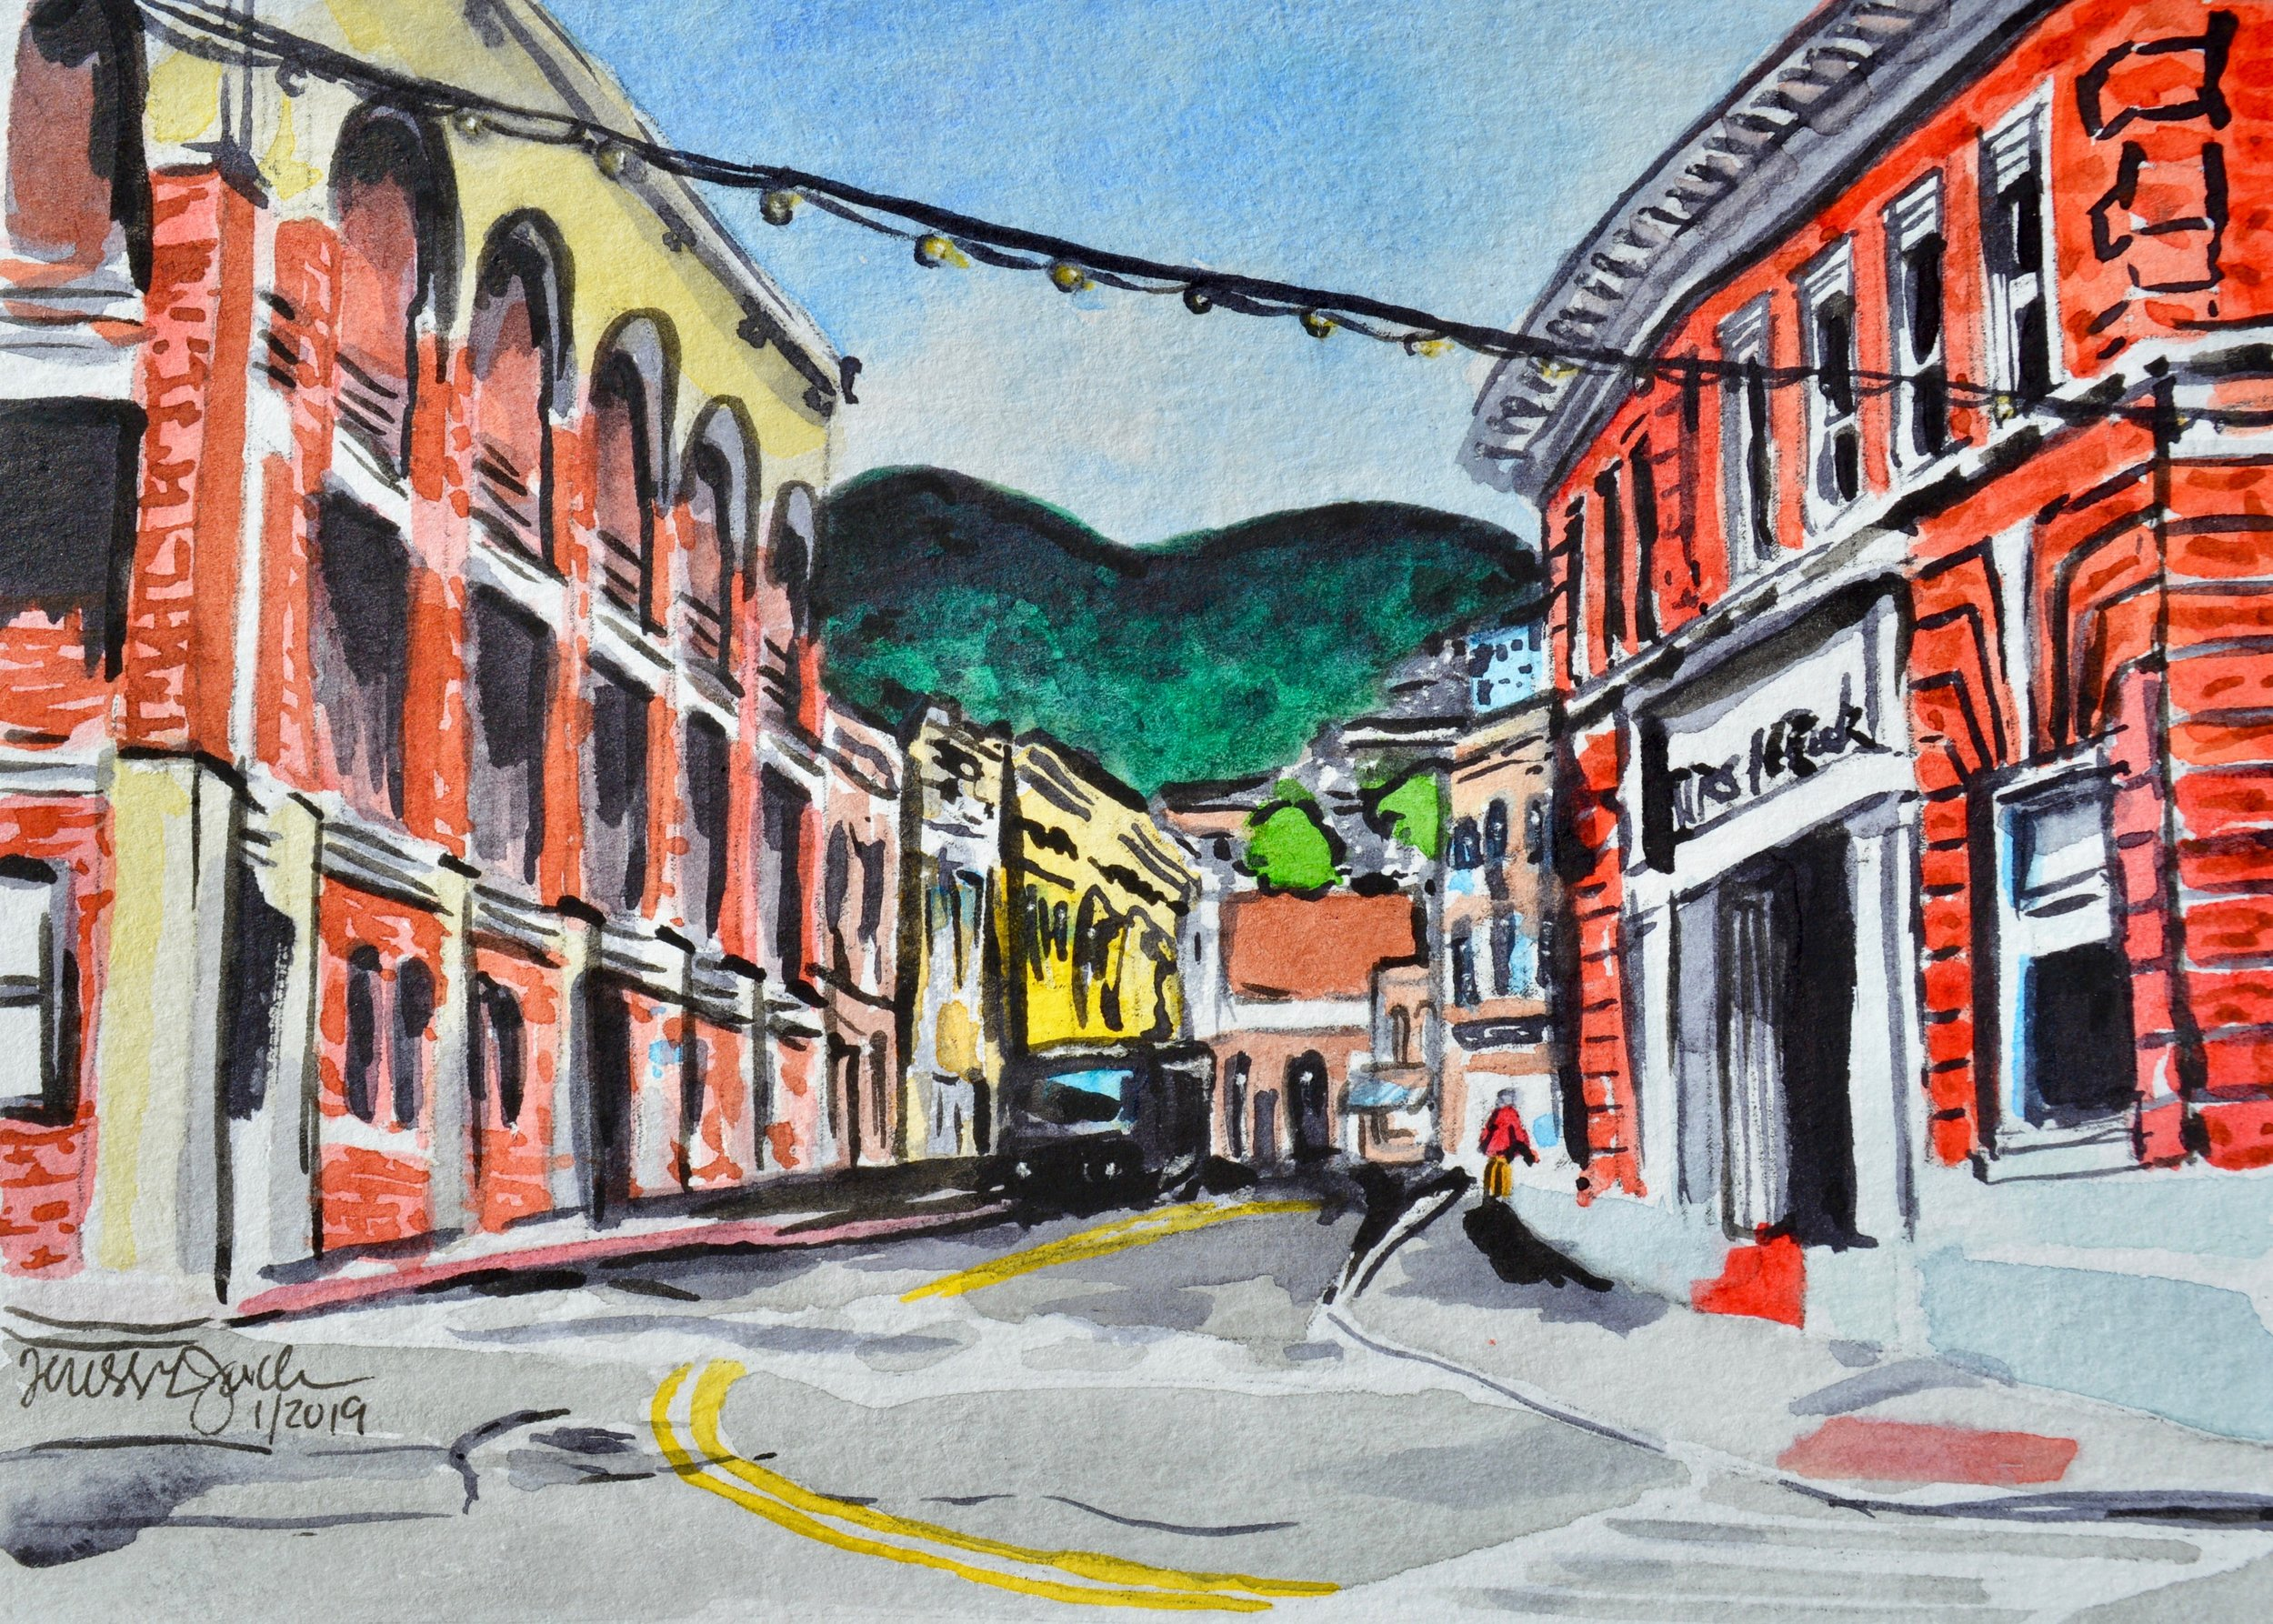 """One Main Street, Bisbee, Arizona""  For sale as of this blog posting  7x5"""